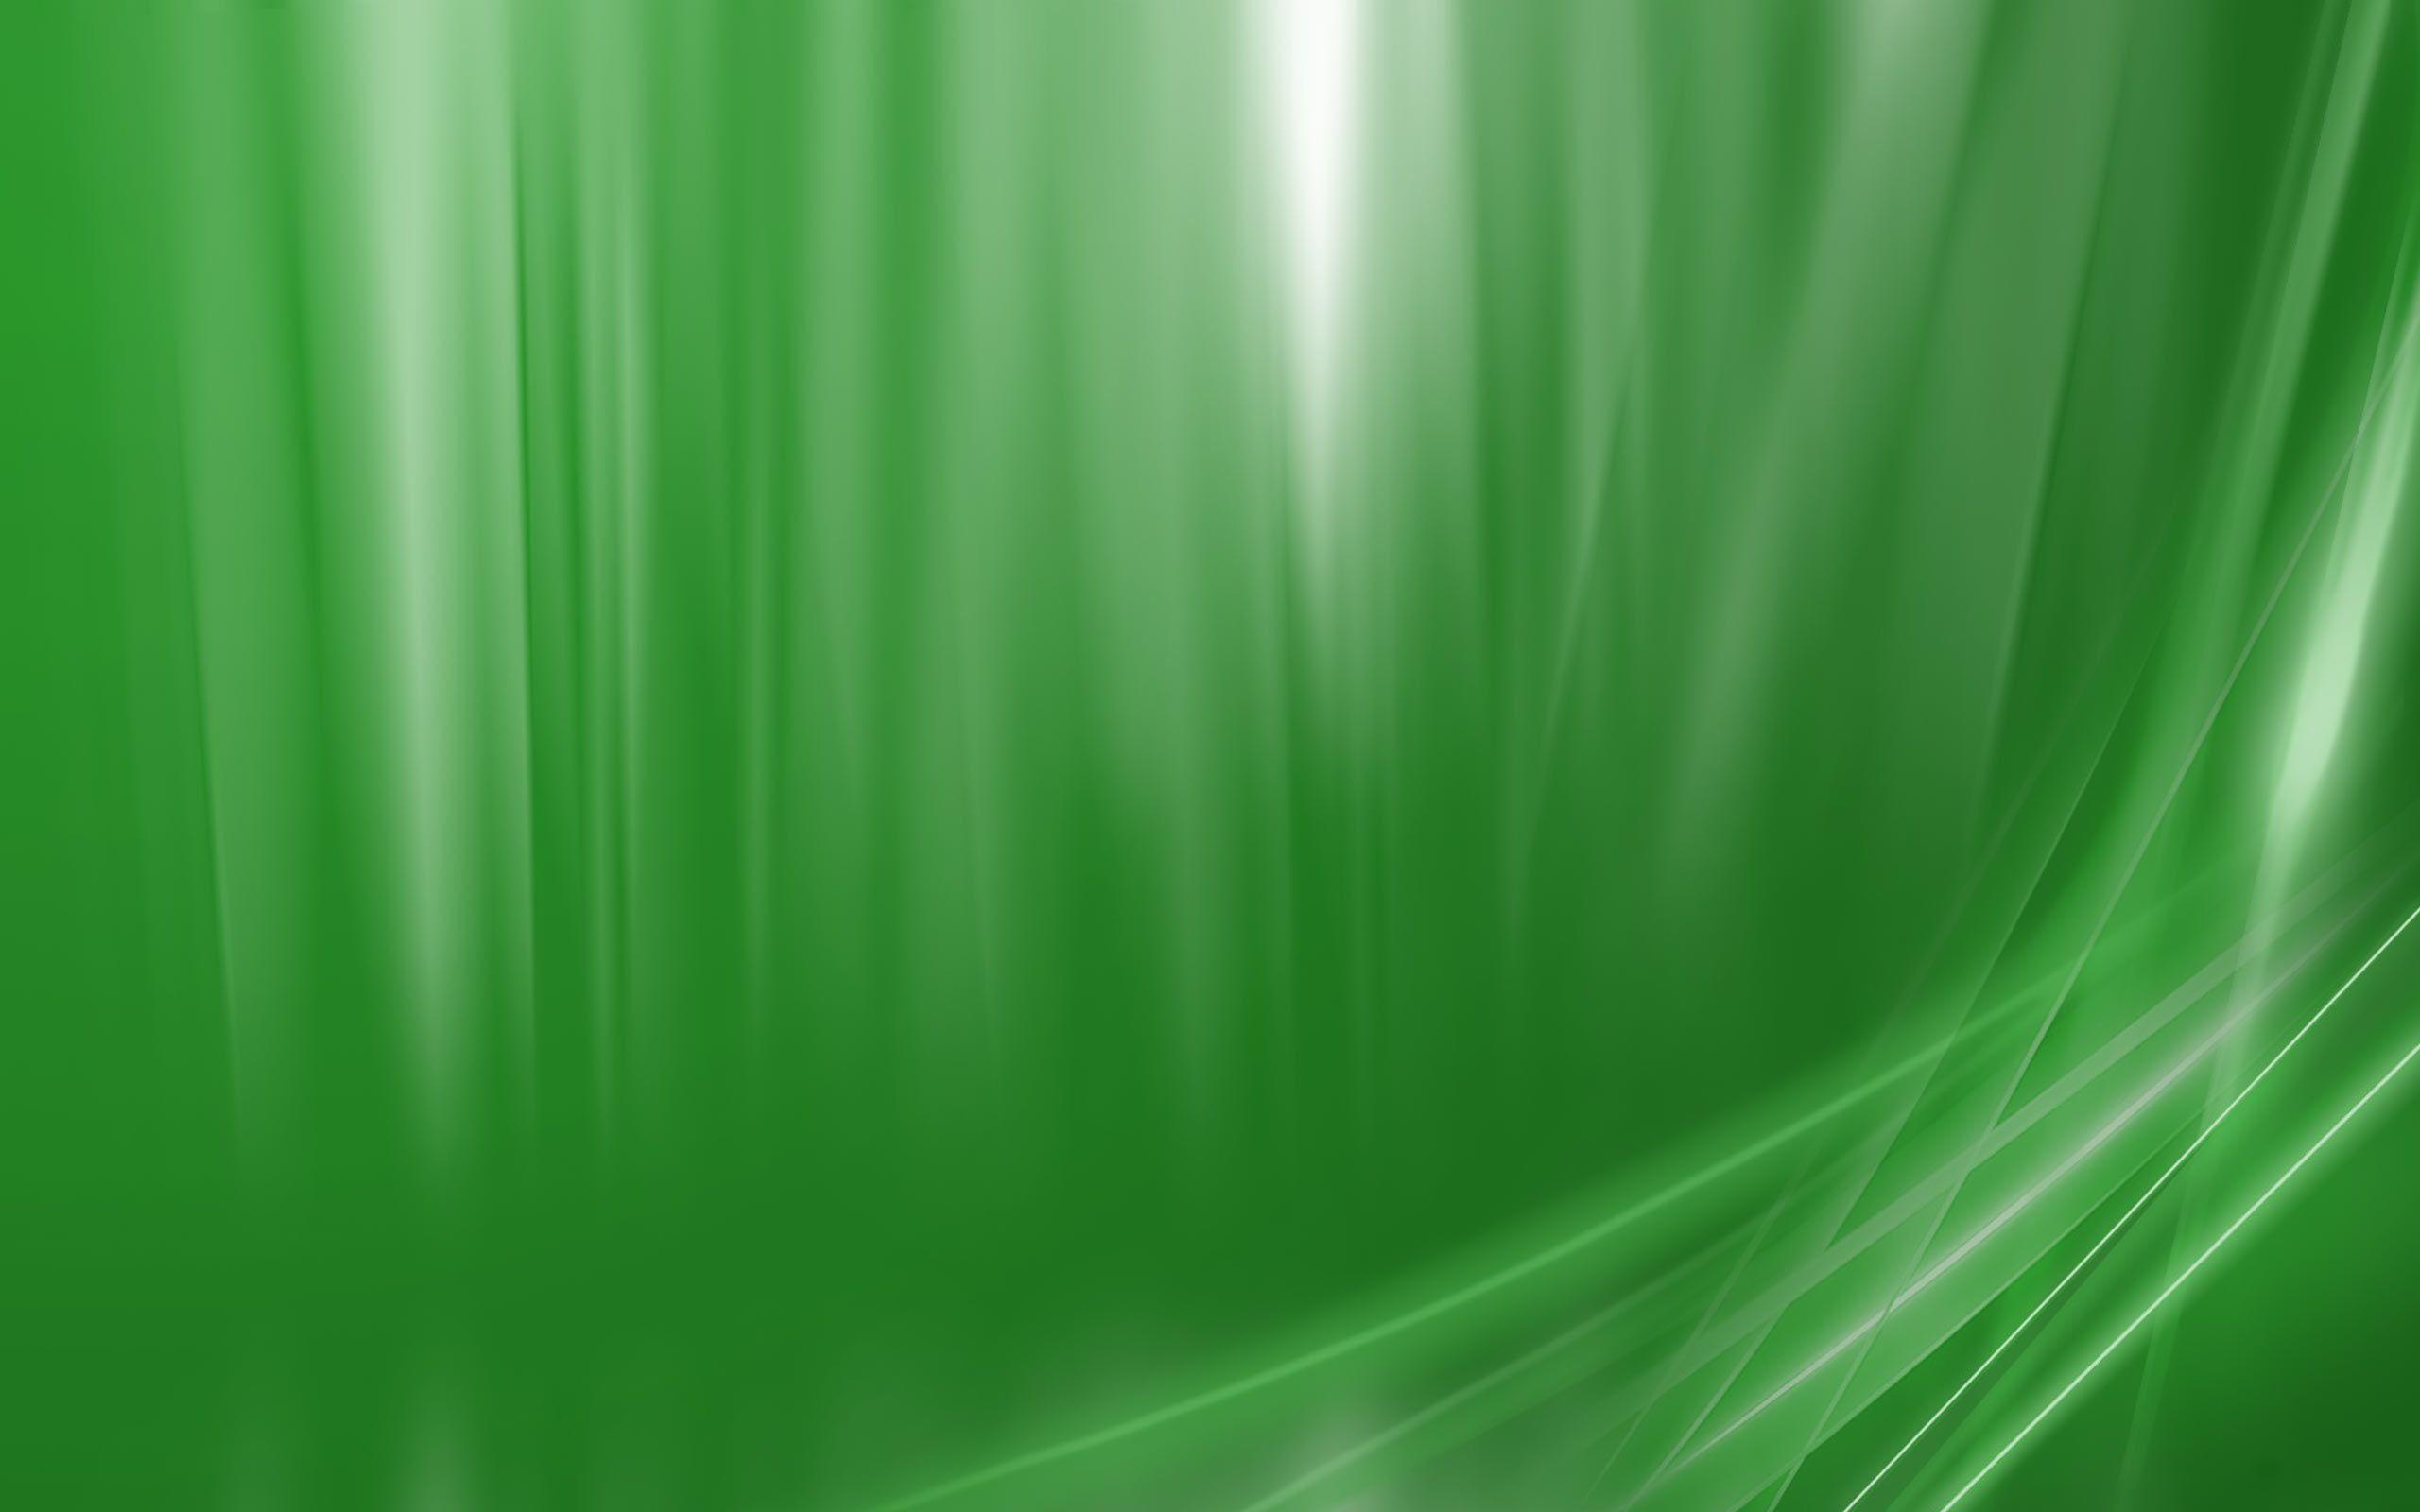 Green Backgrounds 44 Backgrounds